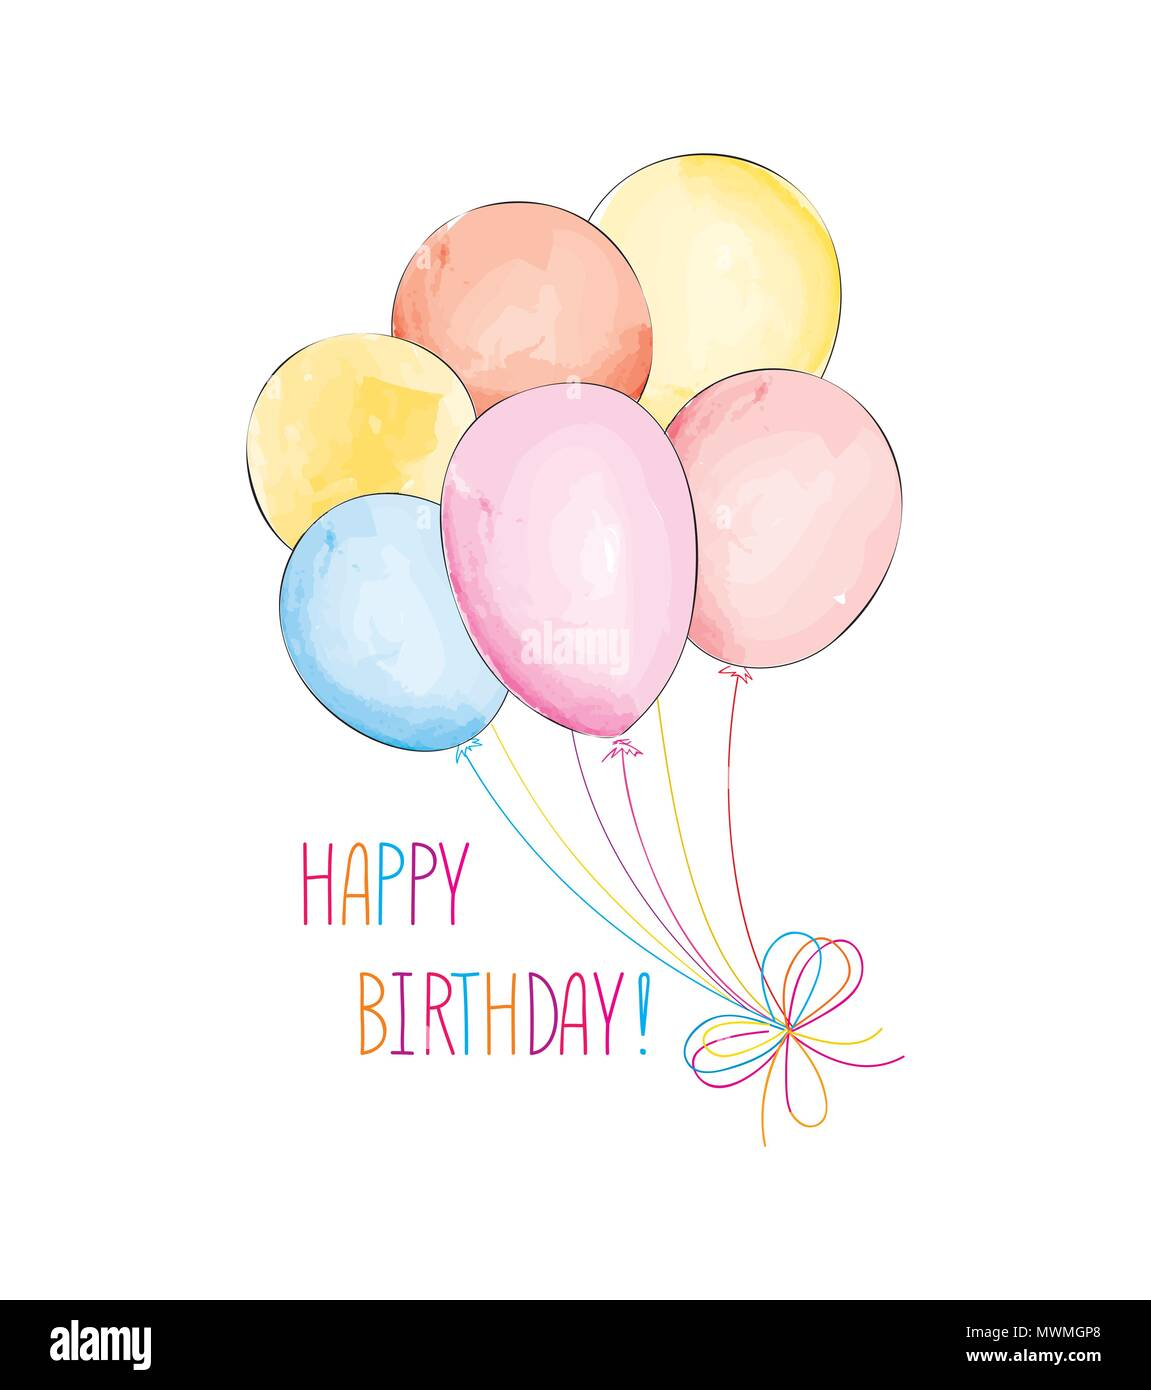 Happy Birthday Greeting Card With Balloons Birthday Ballons With